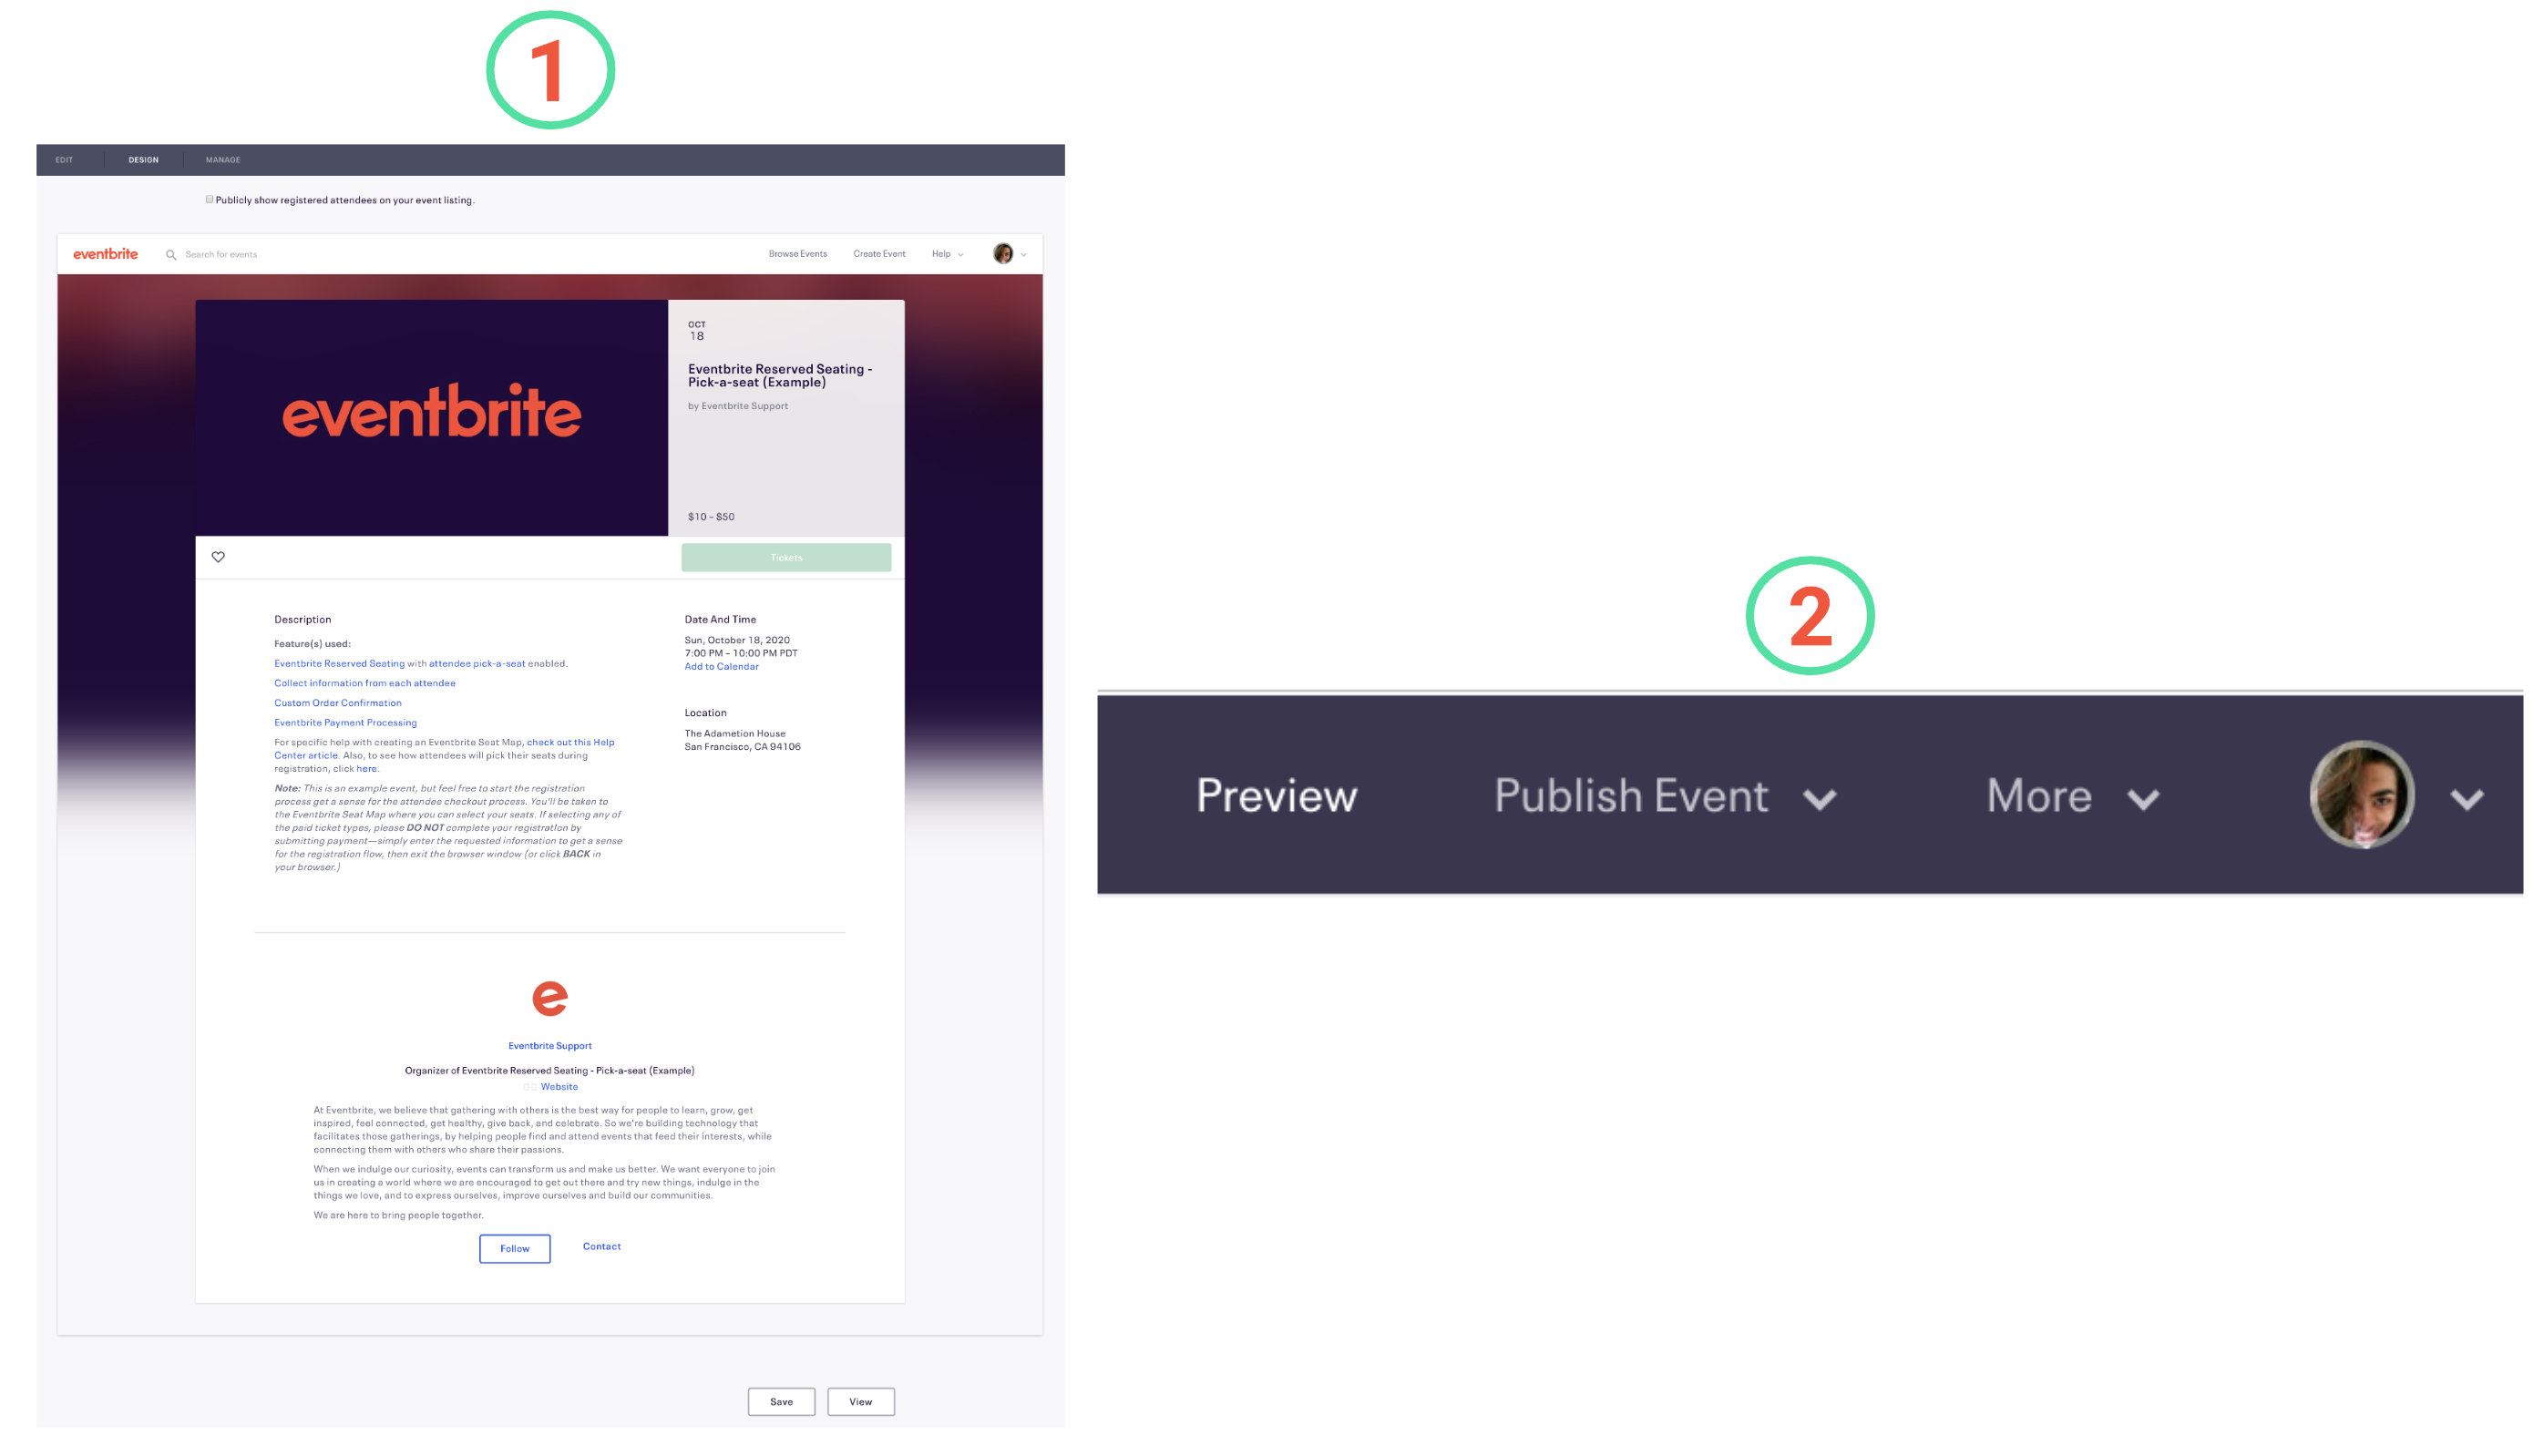 Image highlighting (1) classic versus (2) new event creation experience differences for Design and how it maps to Preview.